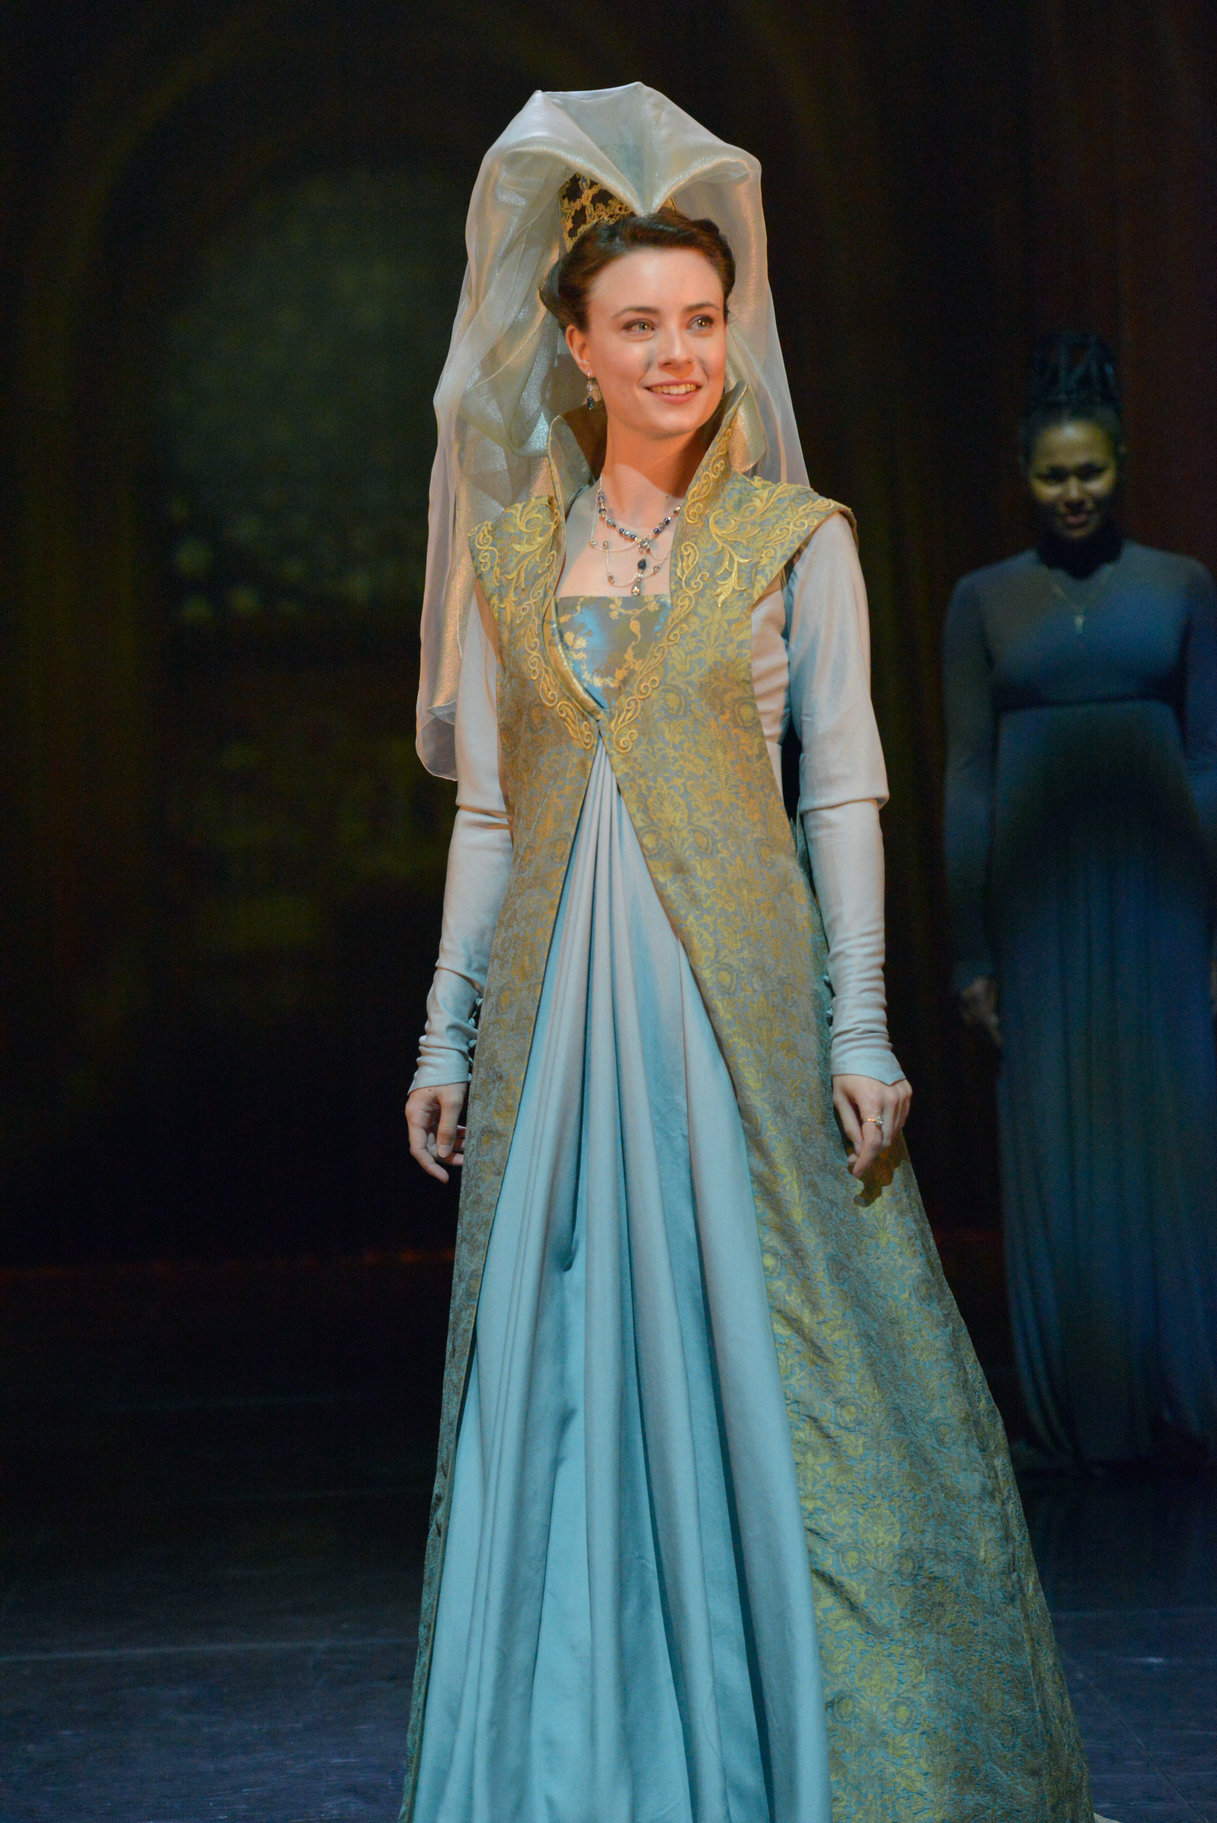 Katherine dressed in a full length blue silk dress with headdress and veil, swept back from her face, in the 2015 production of Henry V